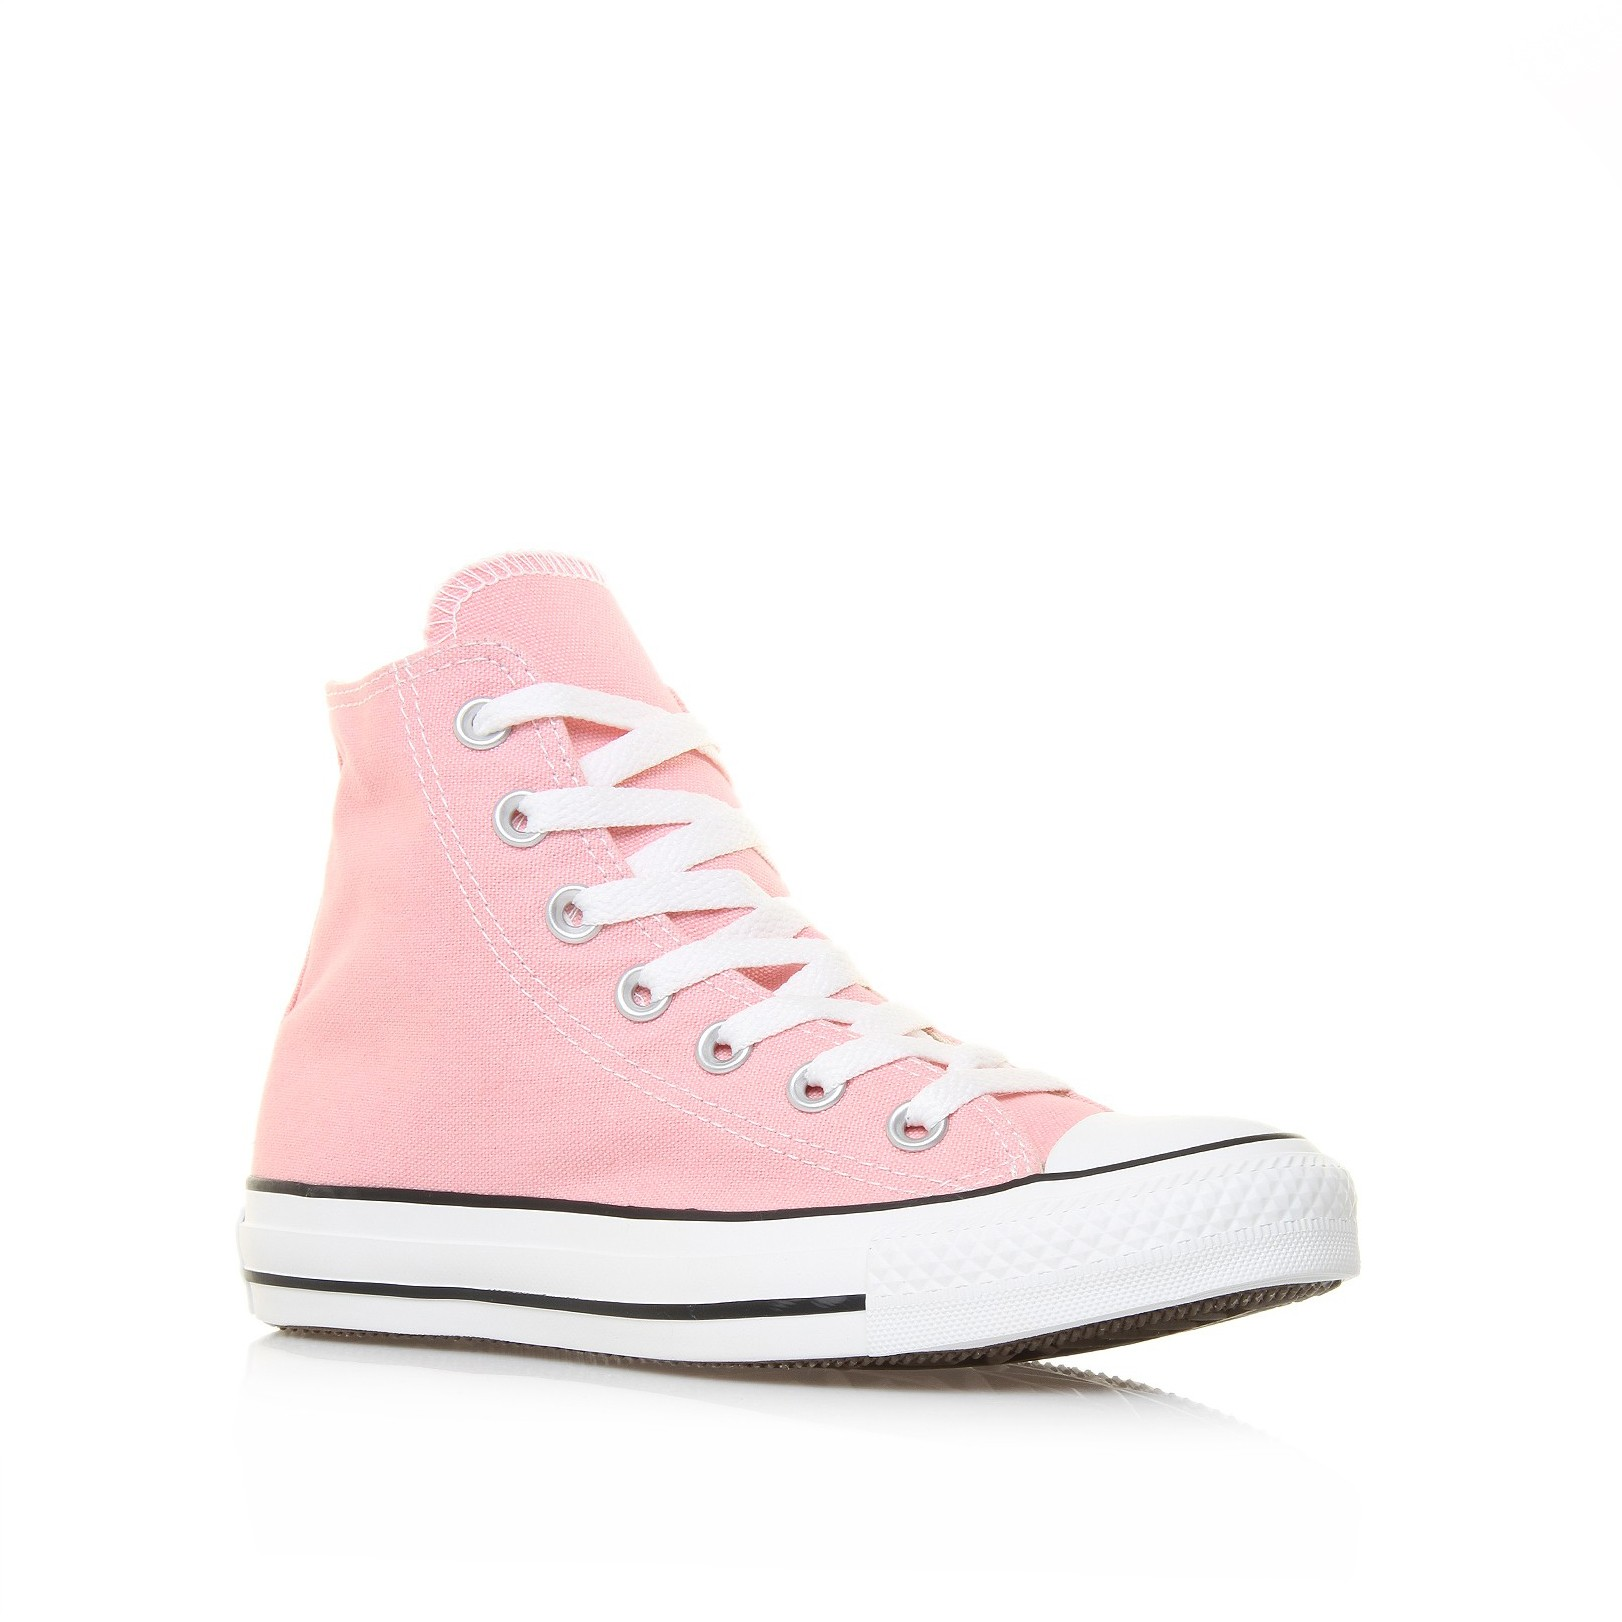 Converse Chuck Taylor All Star Hi In Pink Pink Canvas Lyst